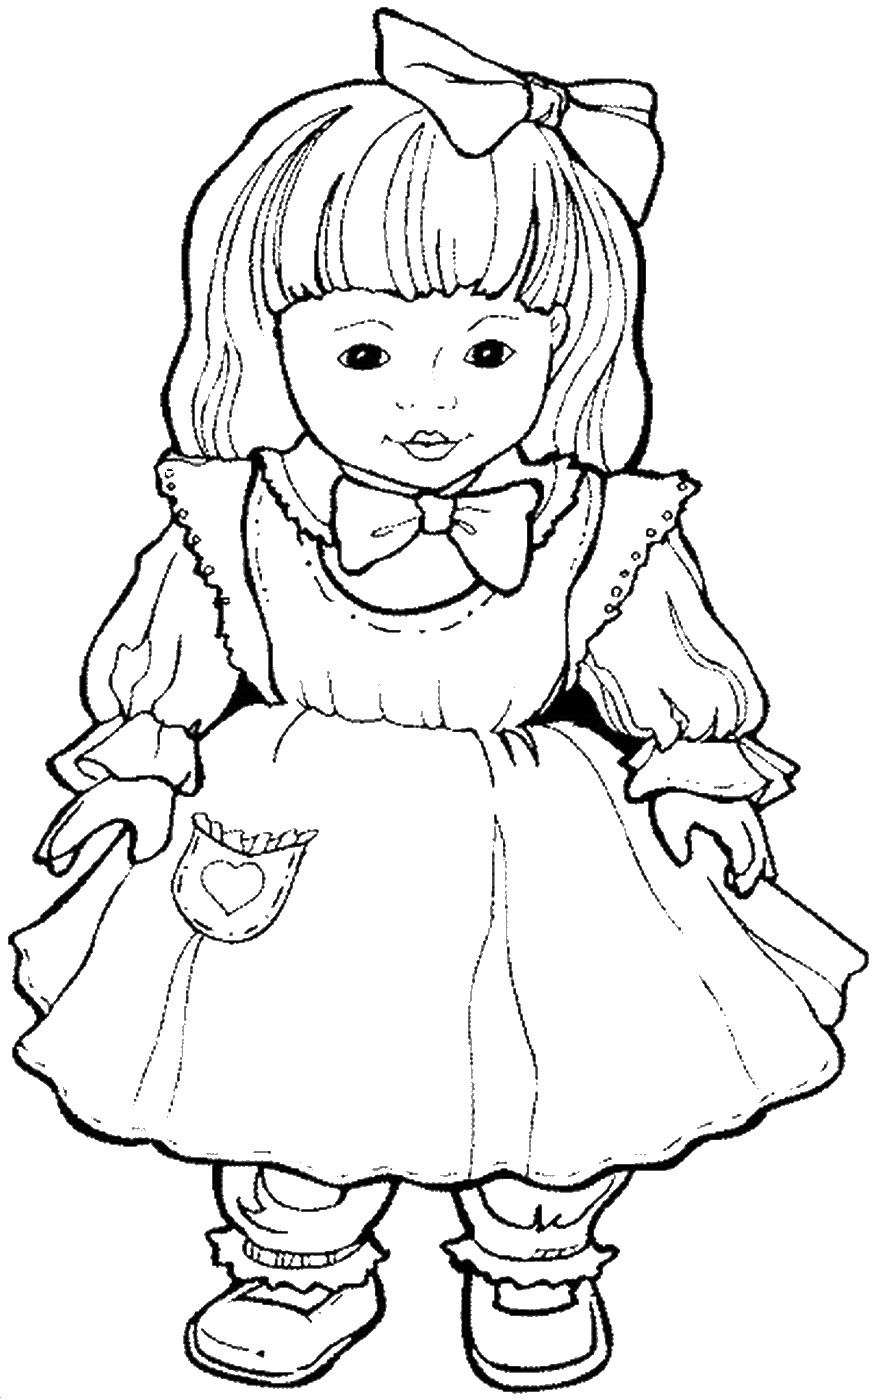 doll colouring pages doll coloring pages to download and print for free pages colouring doll